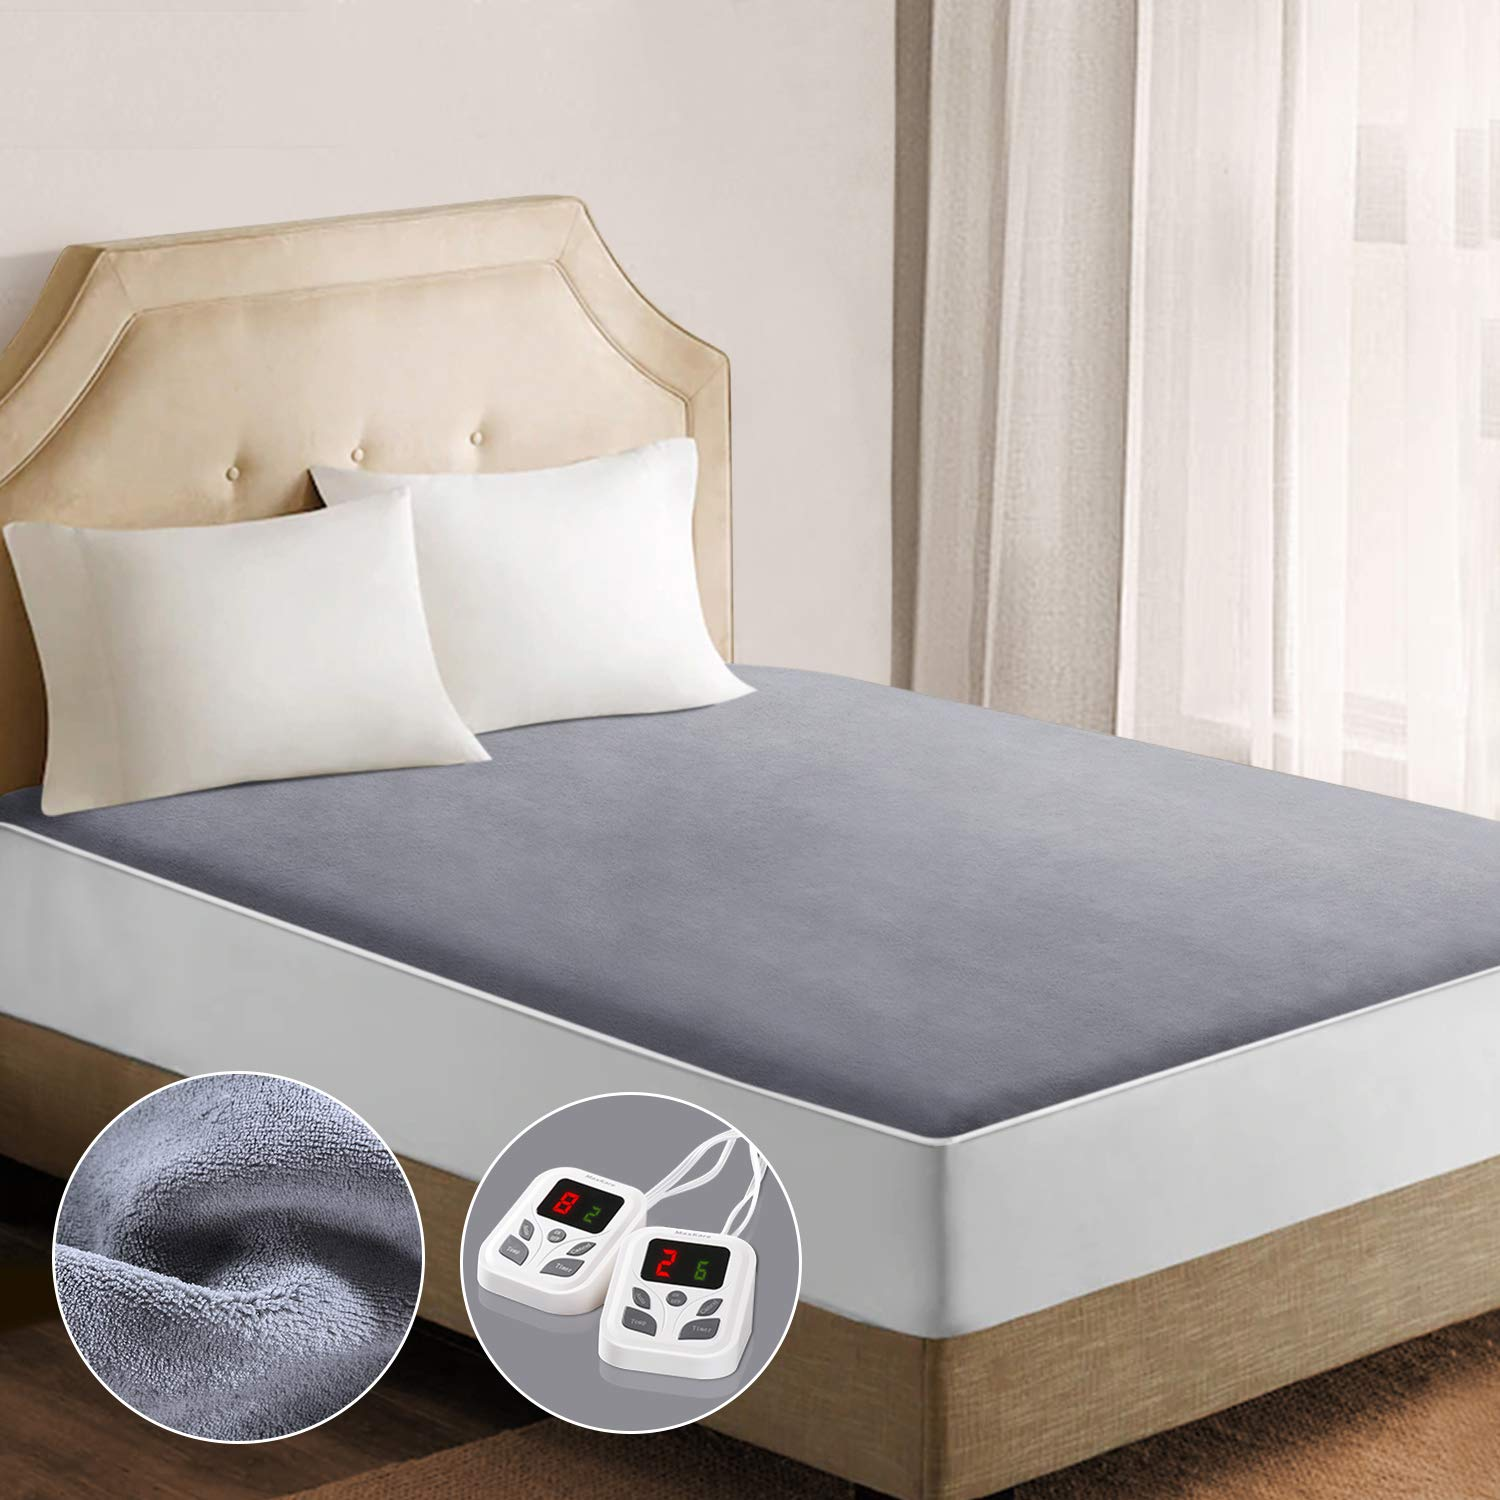 Heated Mattress Pad Underblanket Dual Controller for 2 Users Soft Coral Velvet 10 Heating Levels & 9 Timer Settings Fast Heating